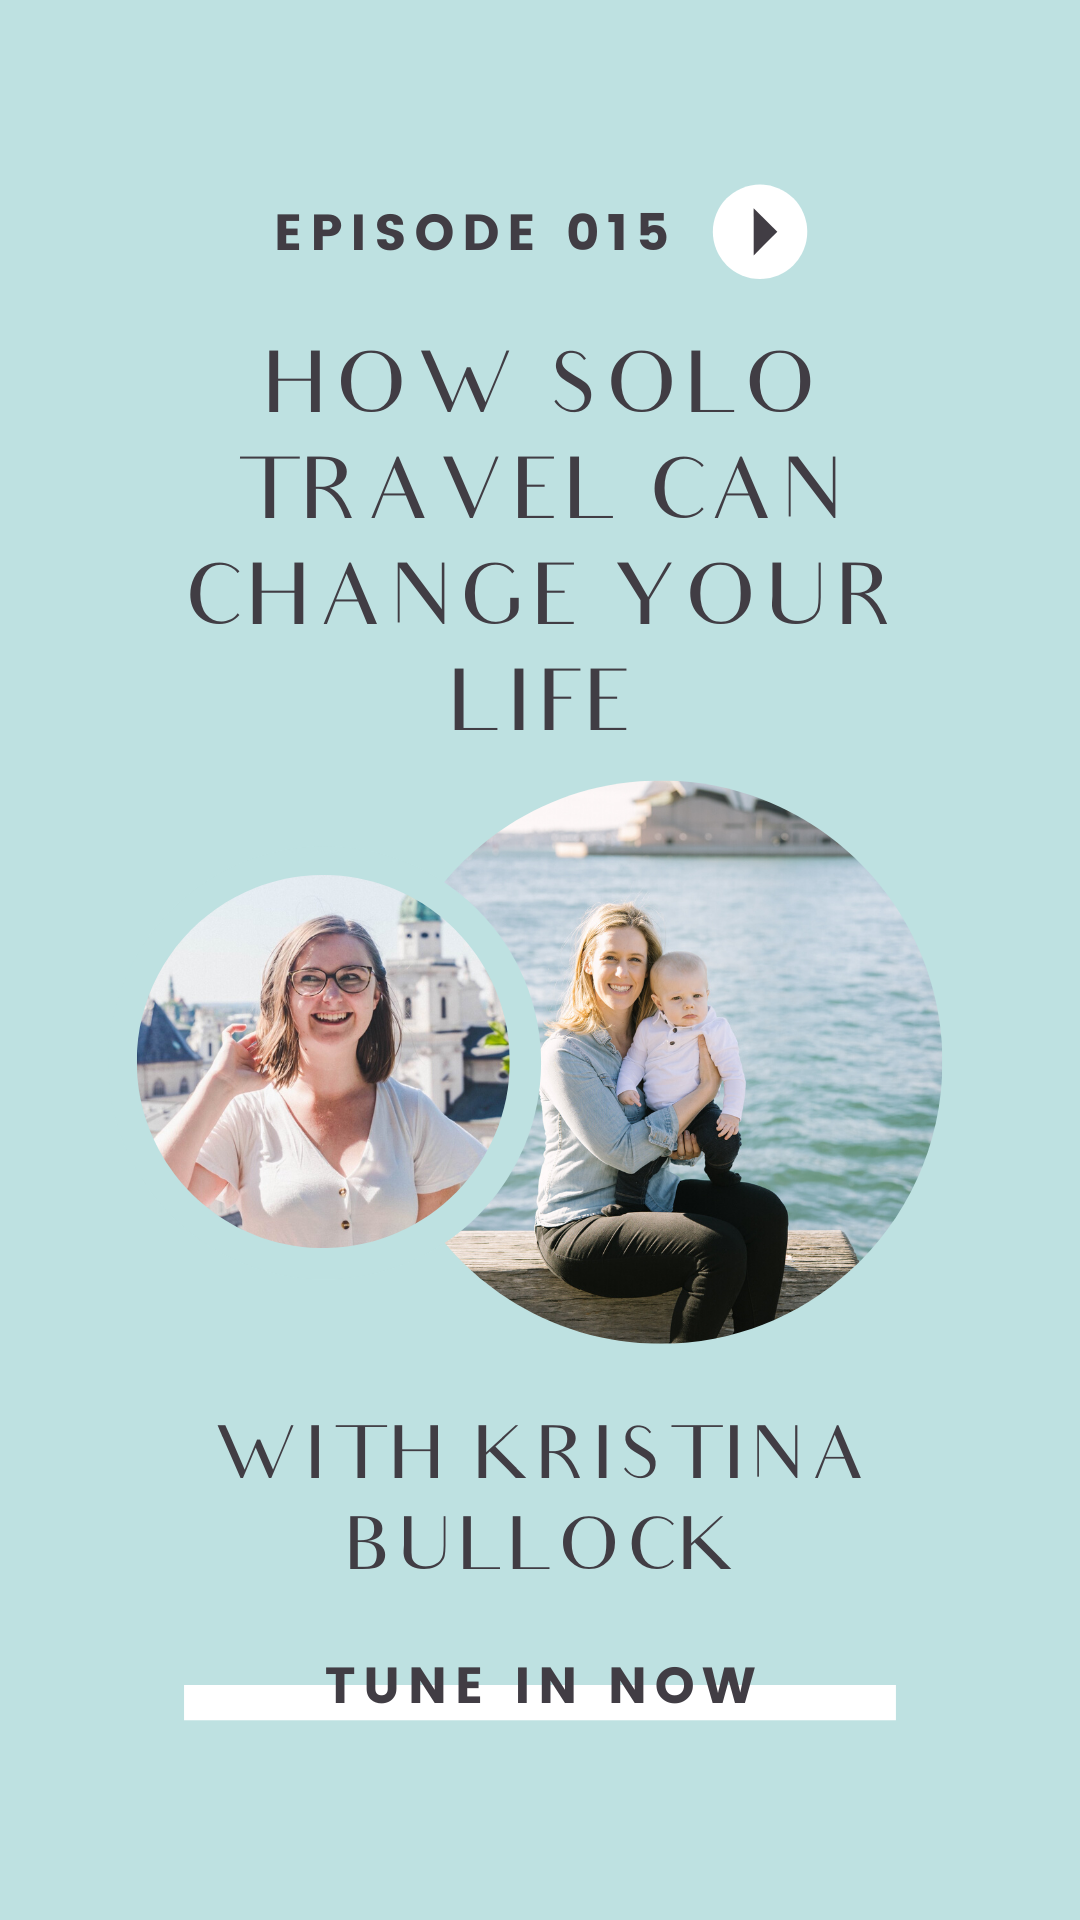 From study abroad to solo travel to couples travel to family travel, Kristina Bullock's life has revolved around travel. Tune in to this episode of the Girls Go Abroad podcast to hear her wisdom.